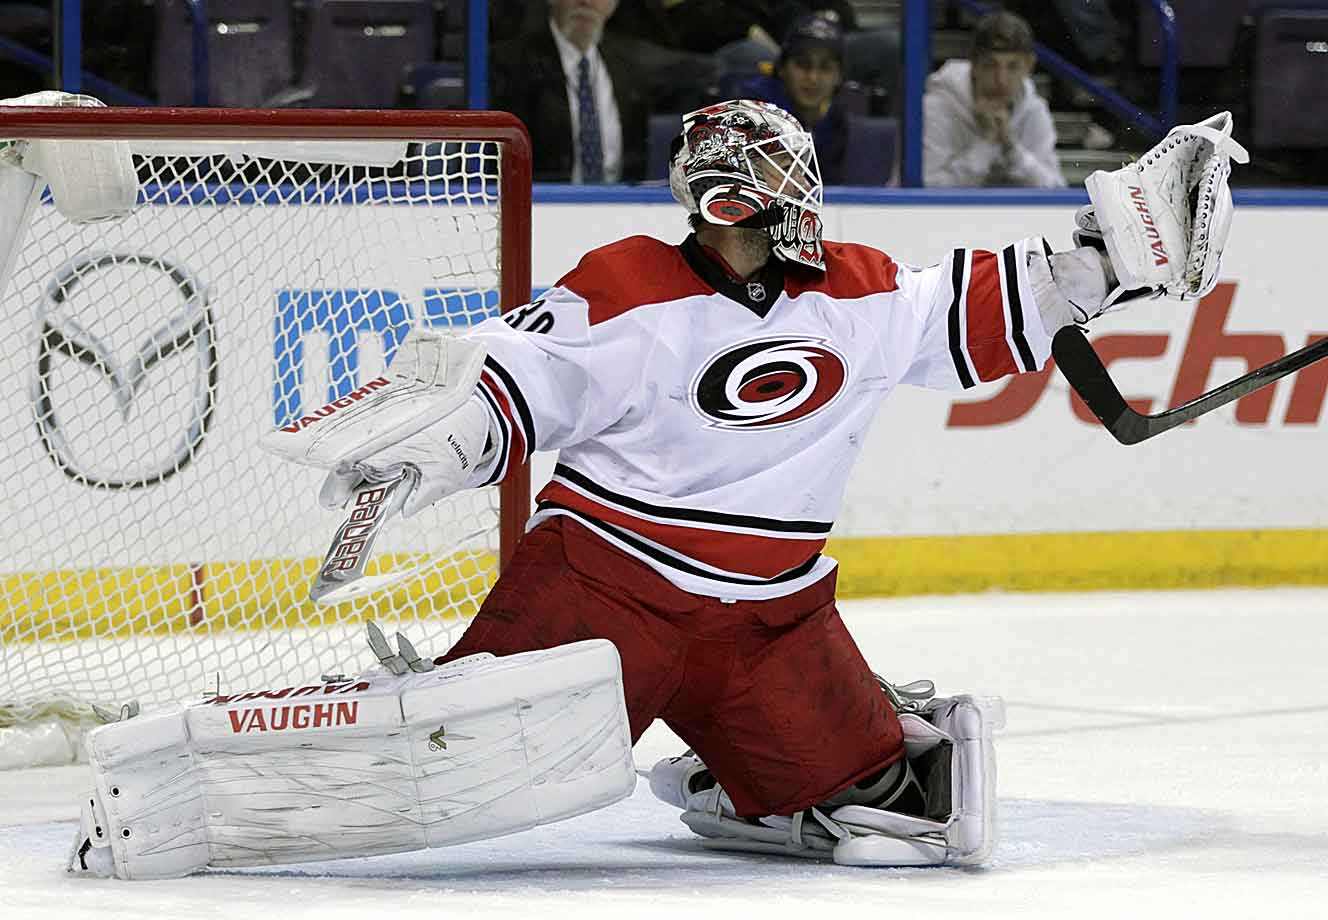 Eight years removed from his Conn Smythe-winning performance as a rookie, the 30-year-old goalie had a lousy season in 2013–14, with a 3.06 goals-against average and a .898 save percentage. And for the second-straight season, he was hampered by injuries. Ward's groin has since healed, but he's played the sixth most games among active goalies. His durability is a question mark.